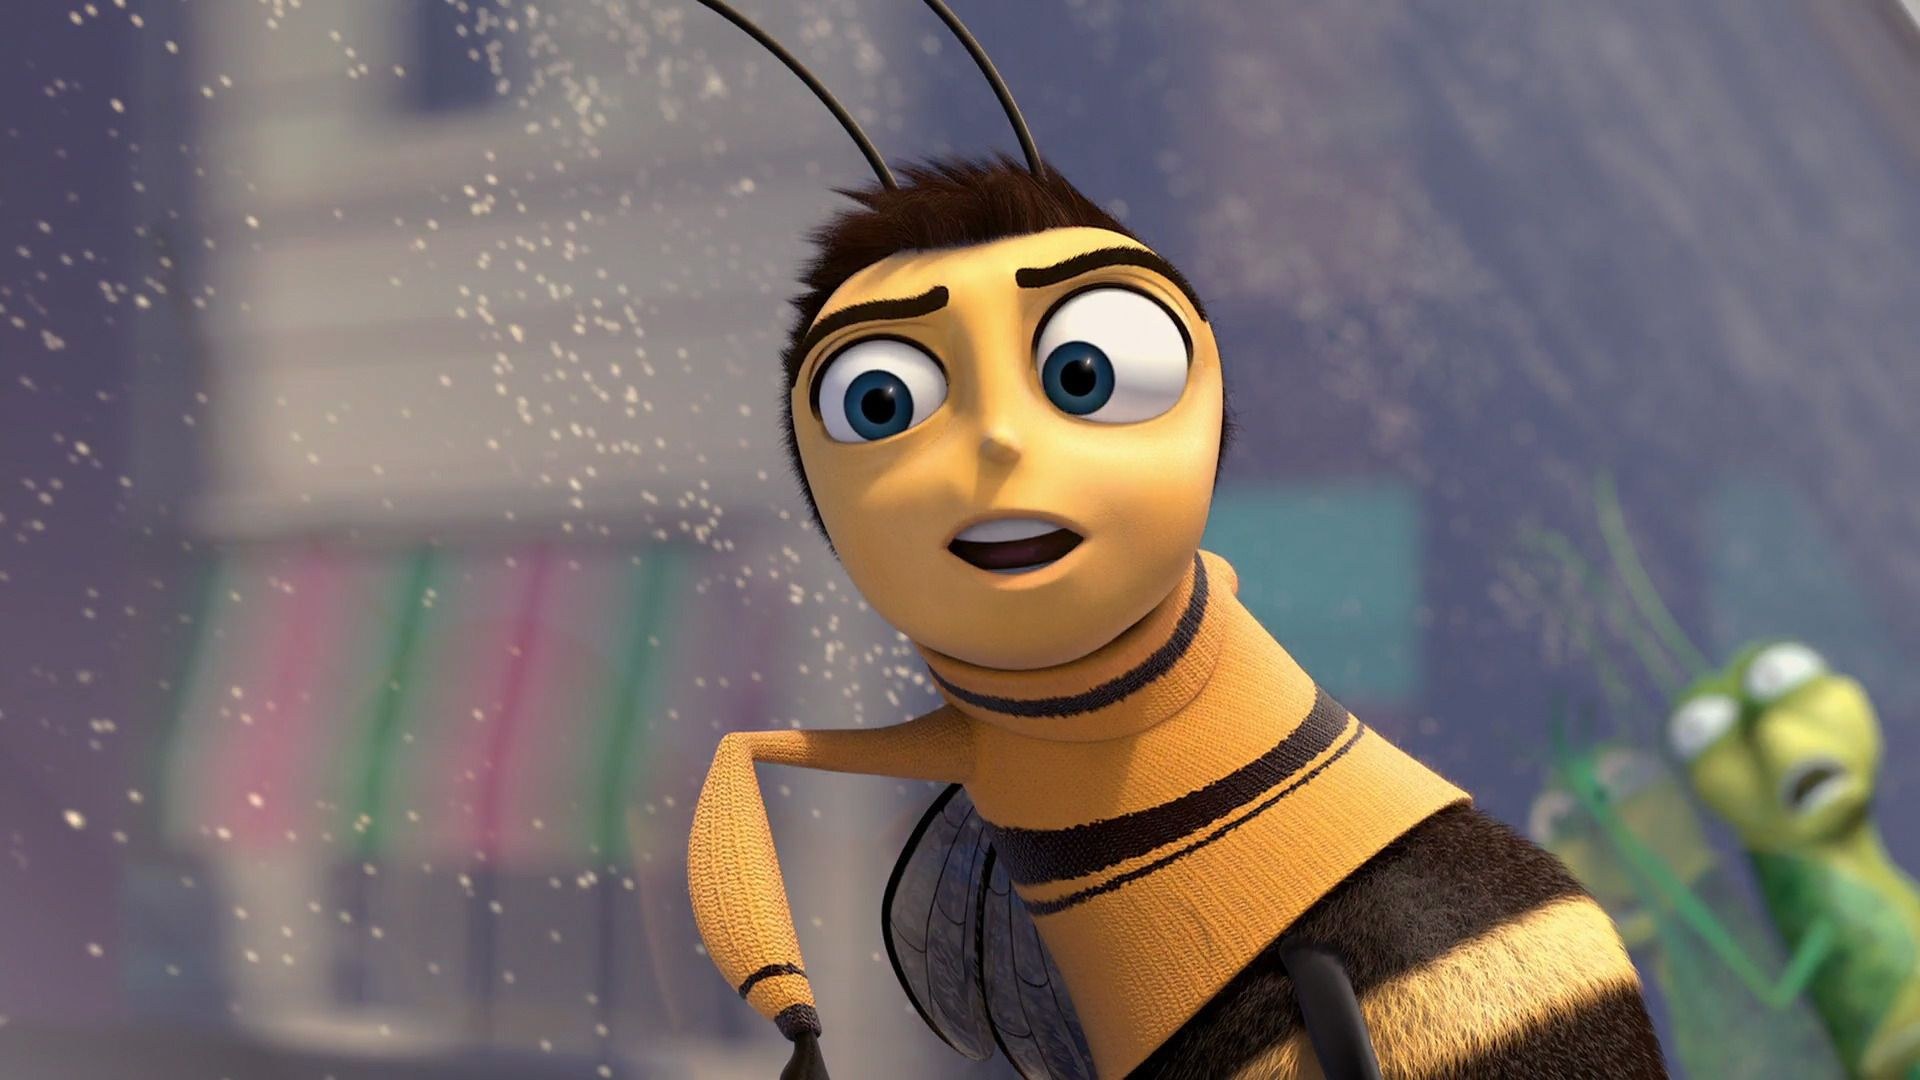 Bee movie movies entertainment background wallpapers on